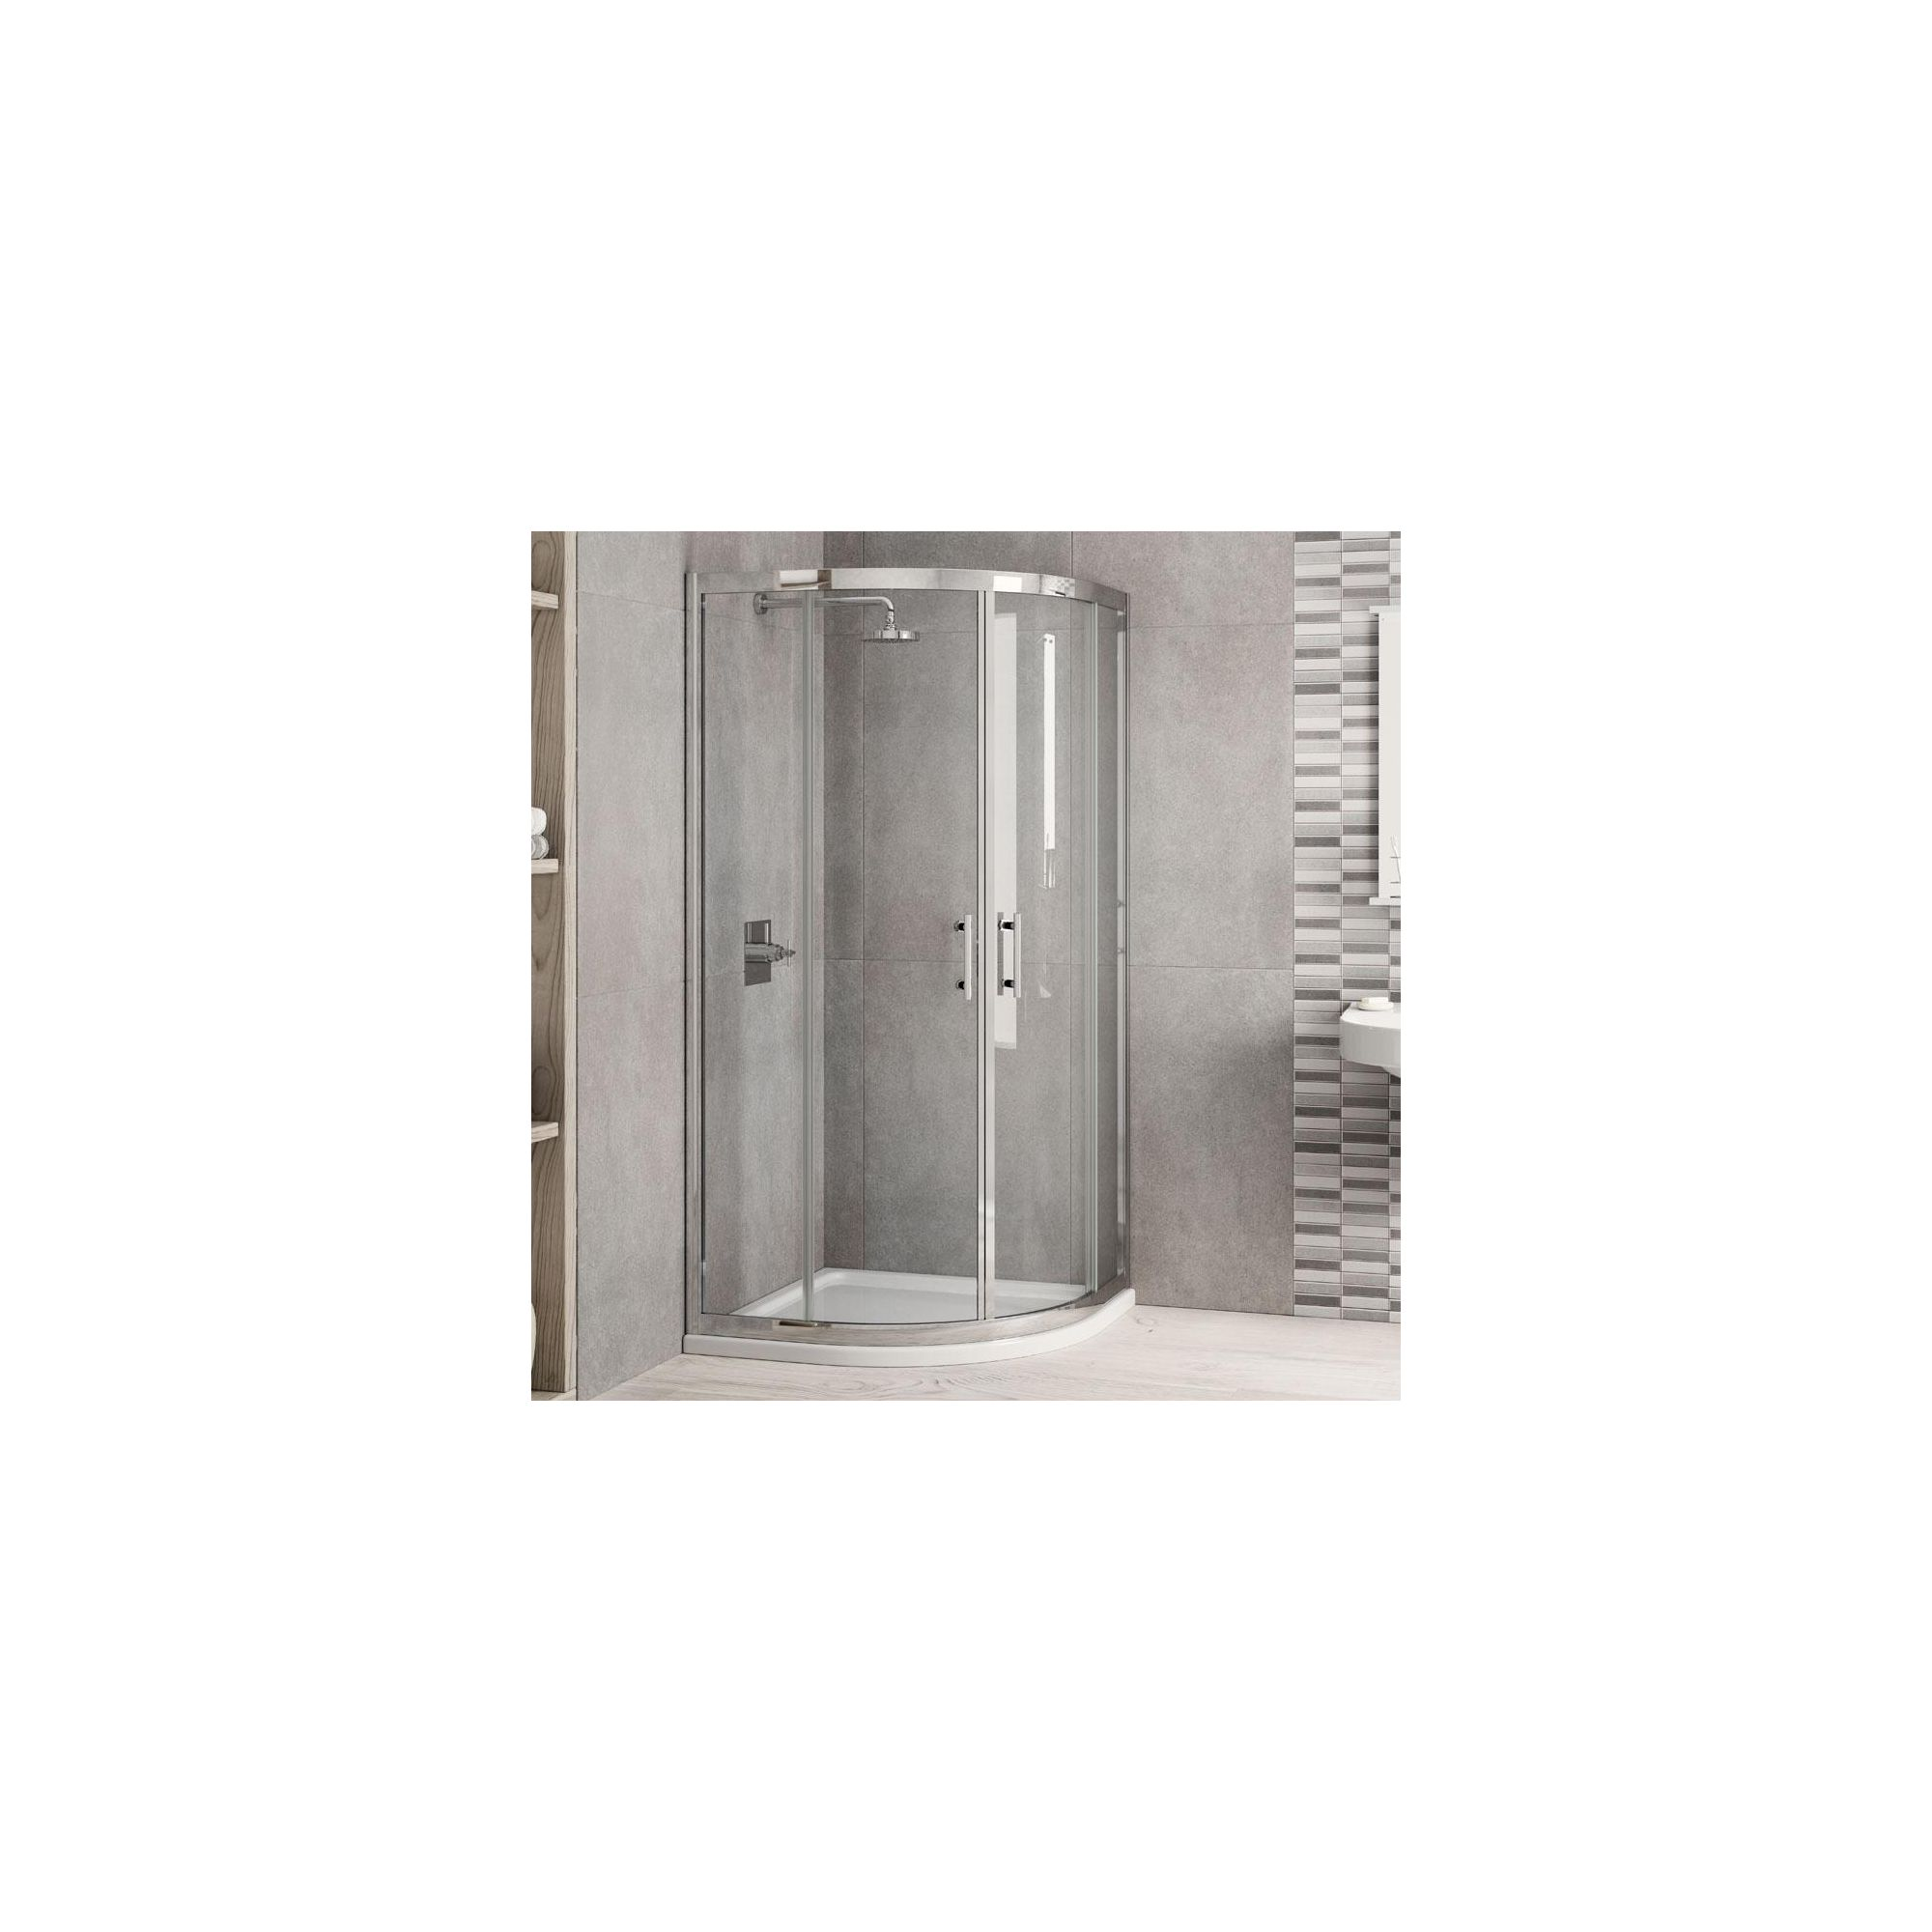 Elemis Inspire Two-Door Quadrant Shower Enclosure, 1000mm x 1000mm, 6mm Glass, Low Profile Tray at Tesco Direct